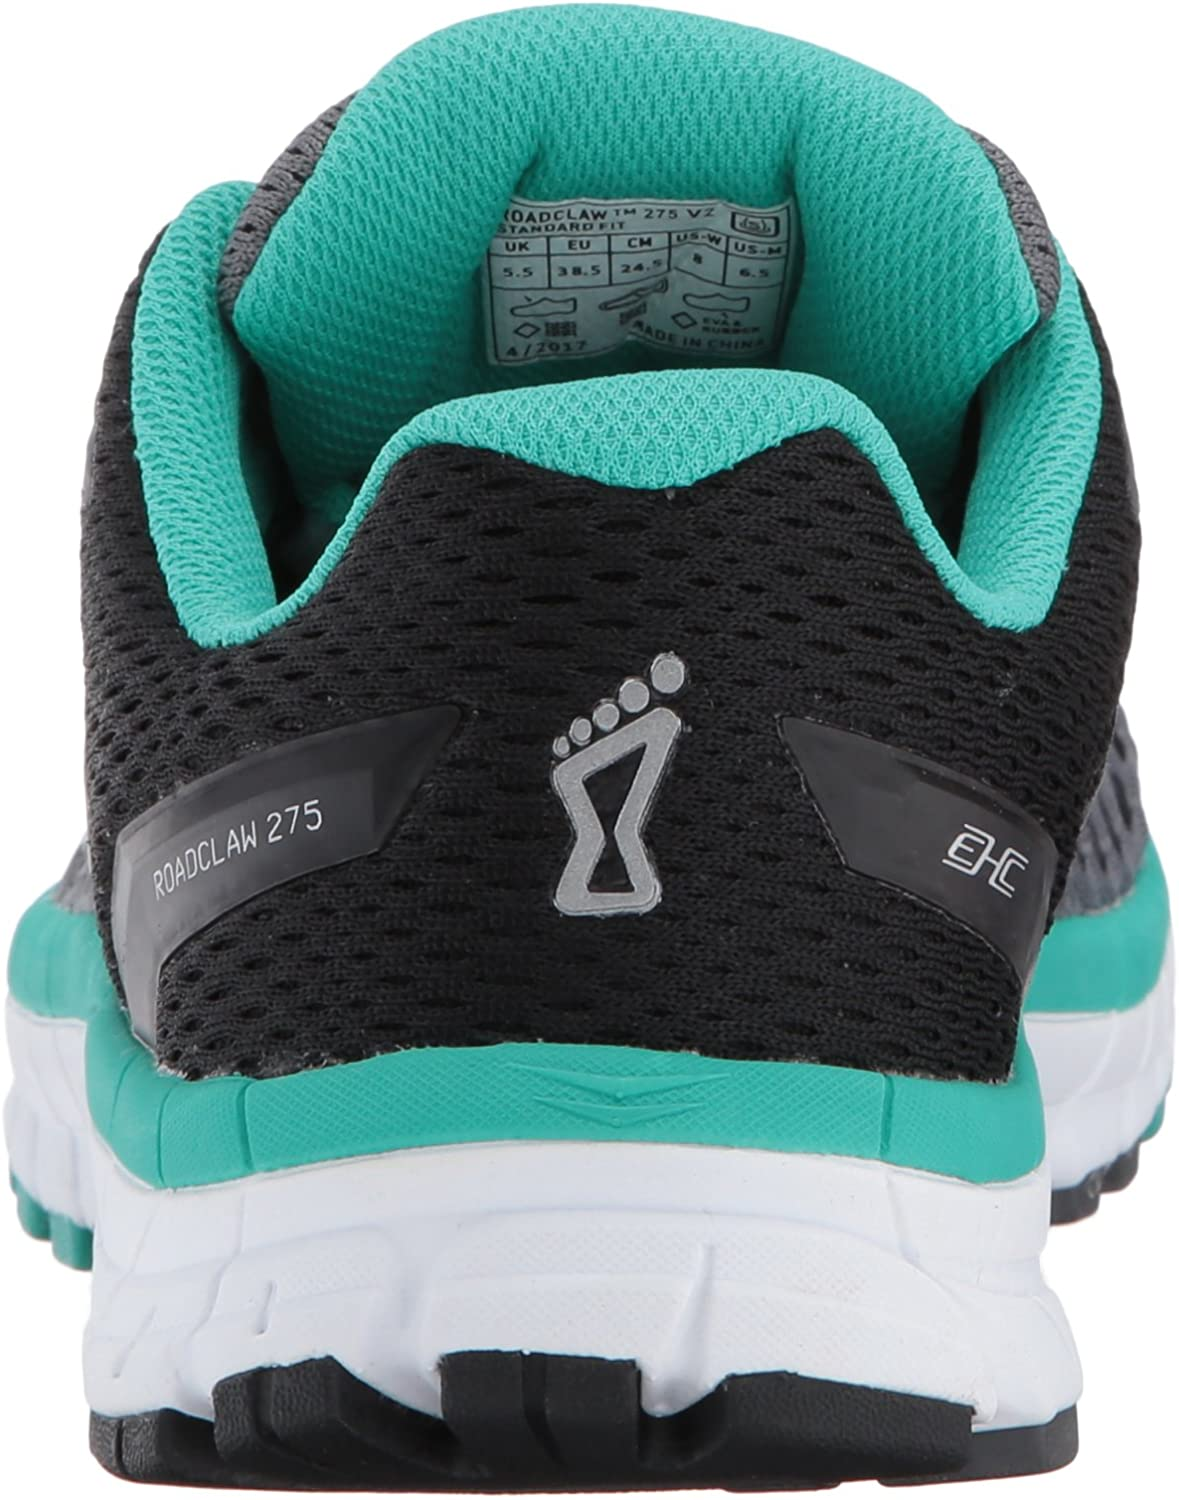 Grey//Teal Inov8 Womens Road Claw 275 V2 Road Running Shoes